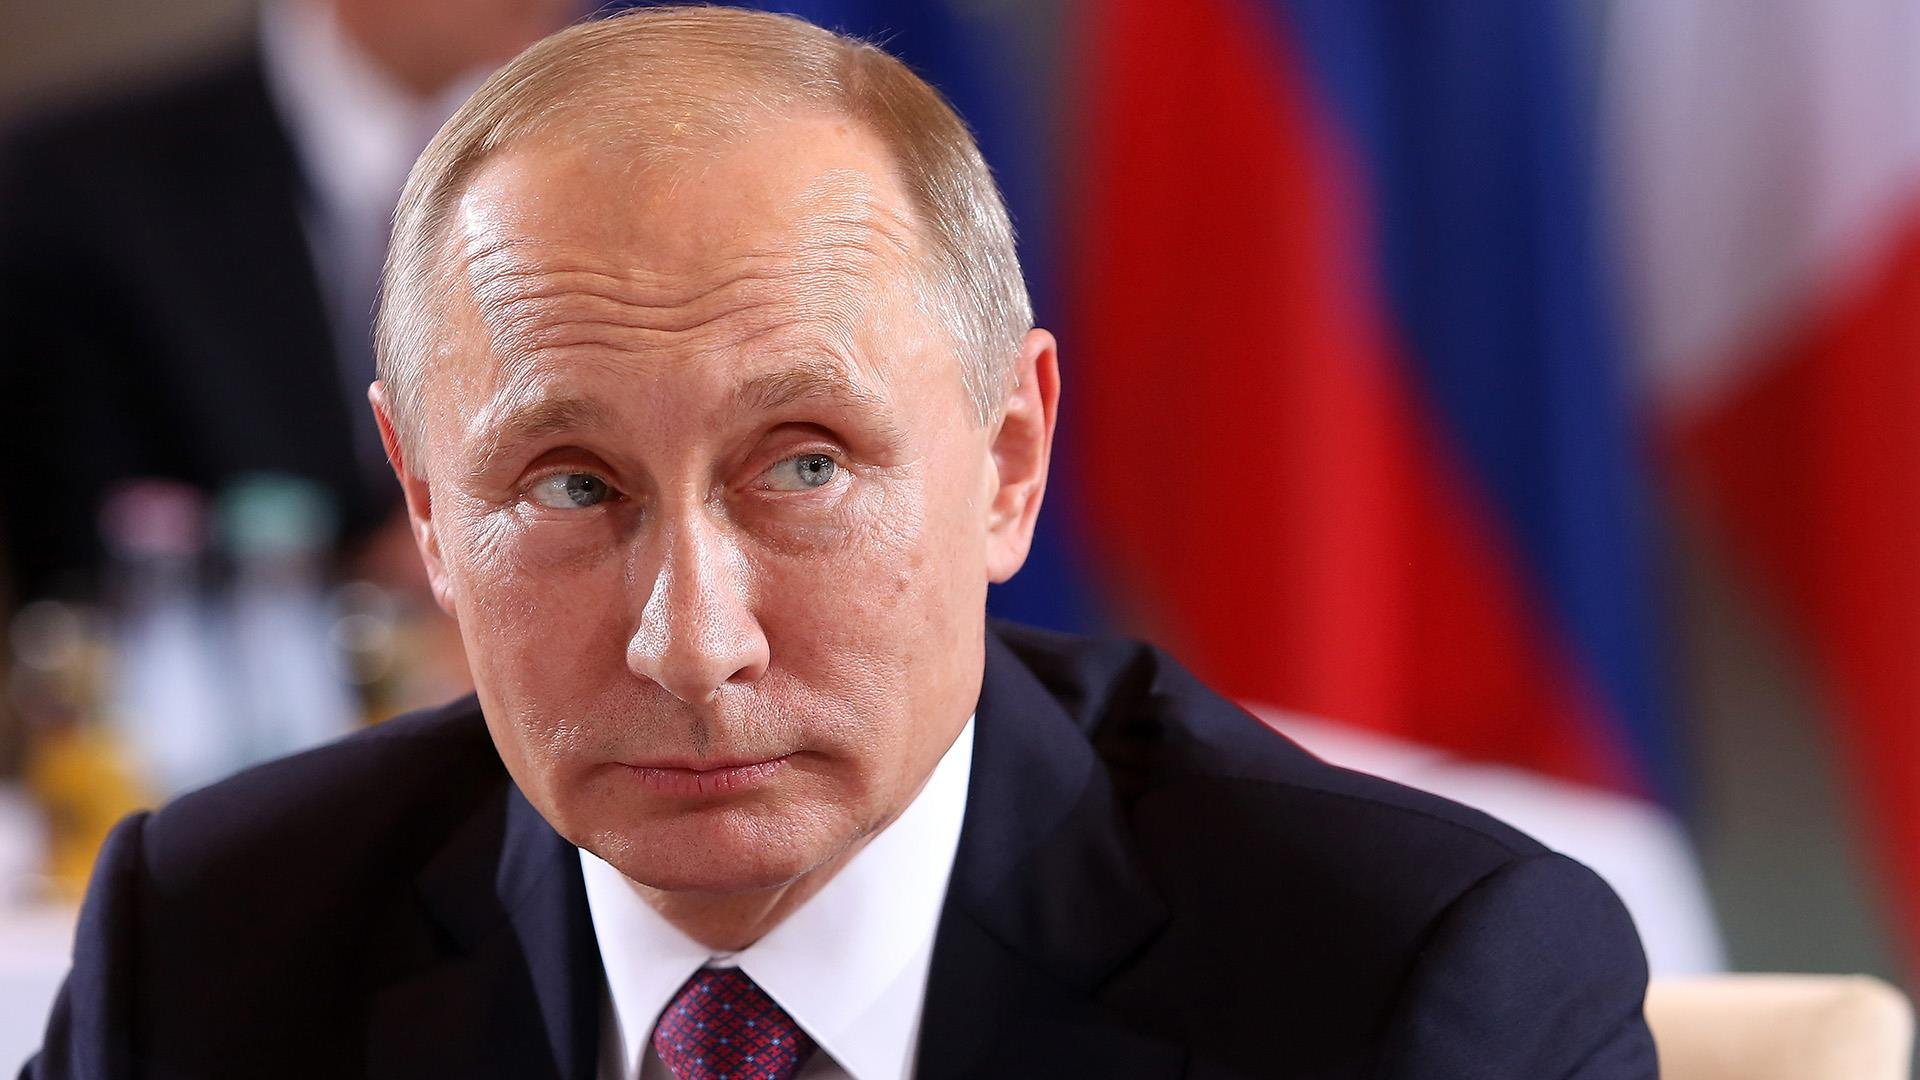 u s officials putin personally involved in u s election hack